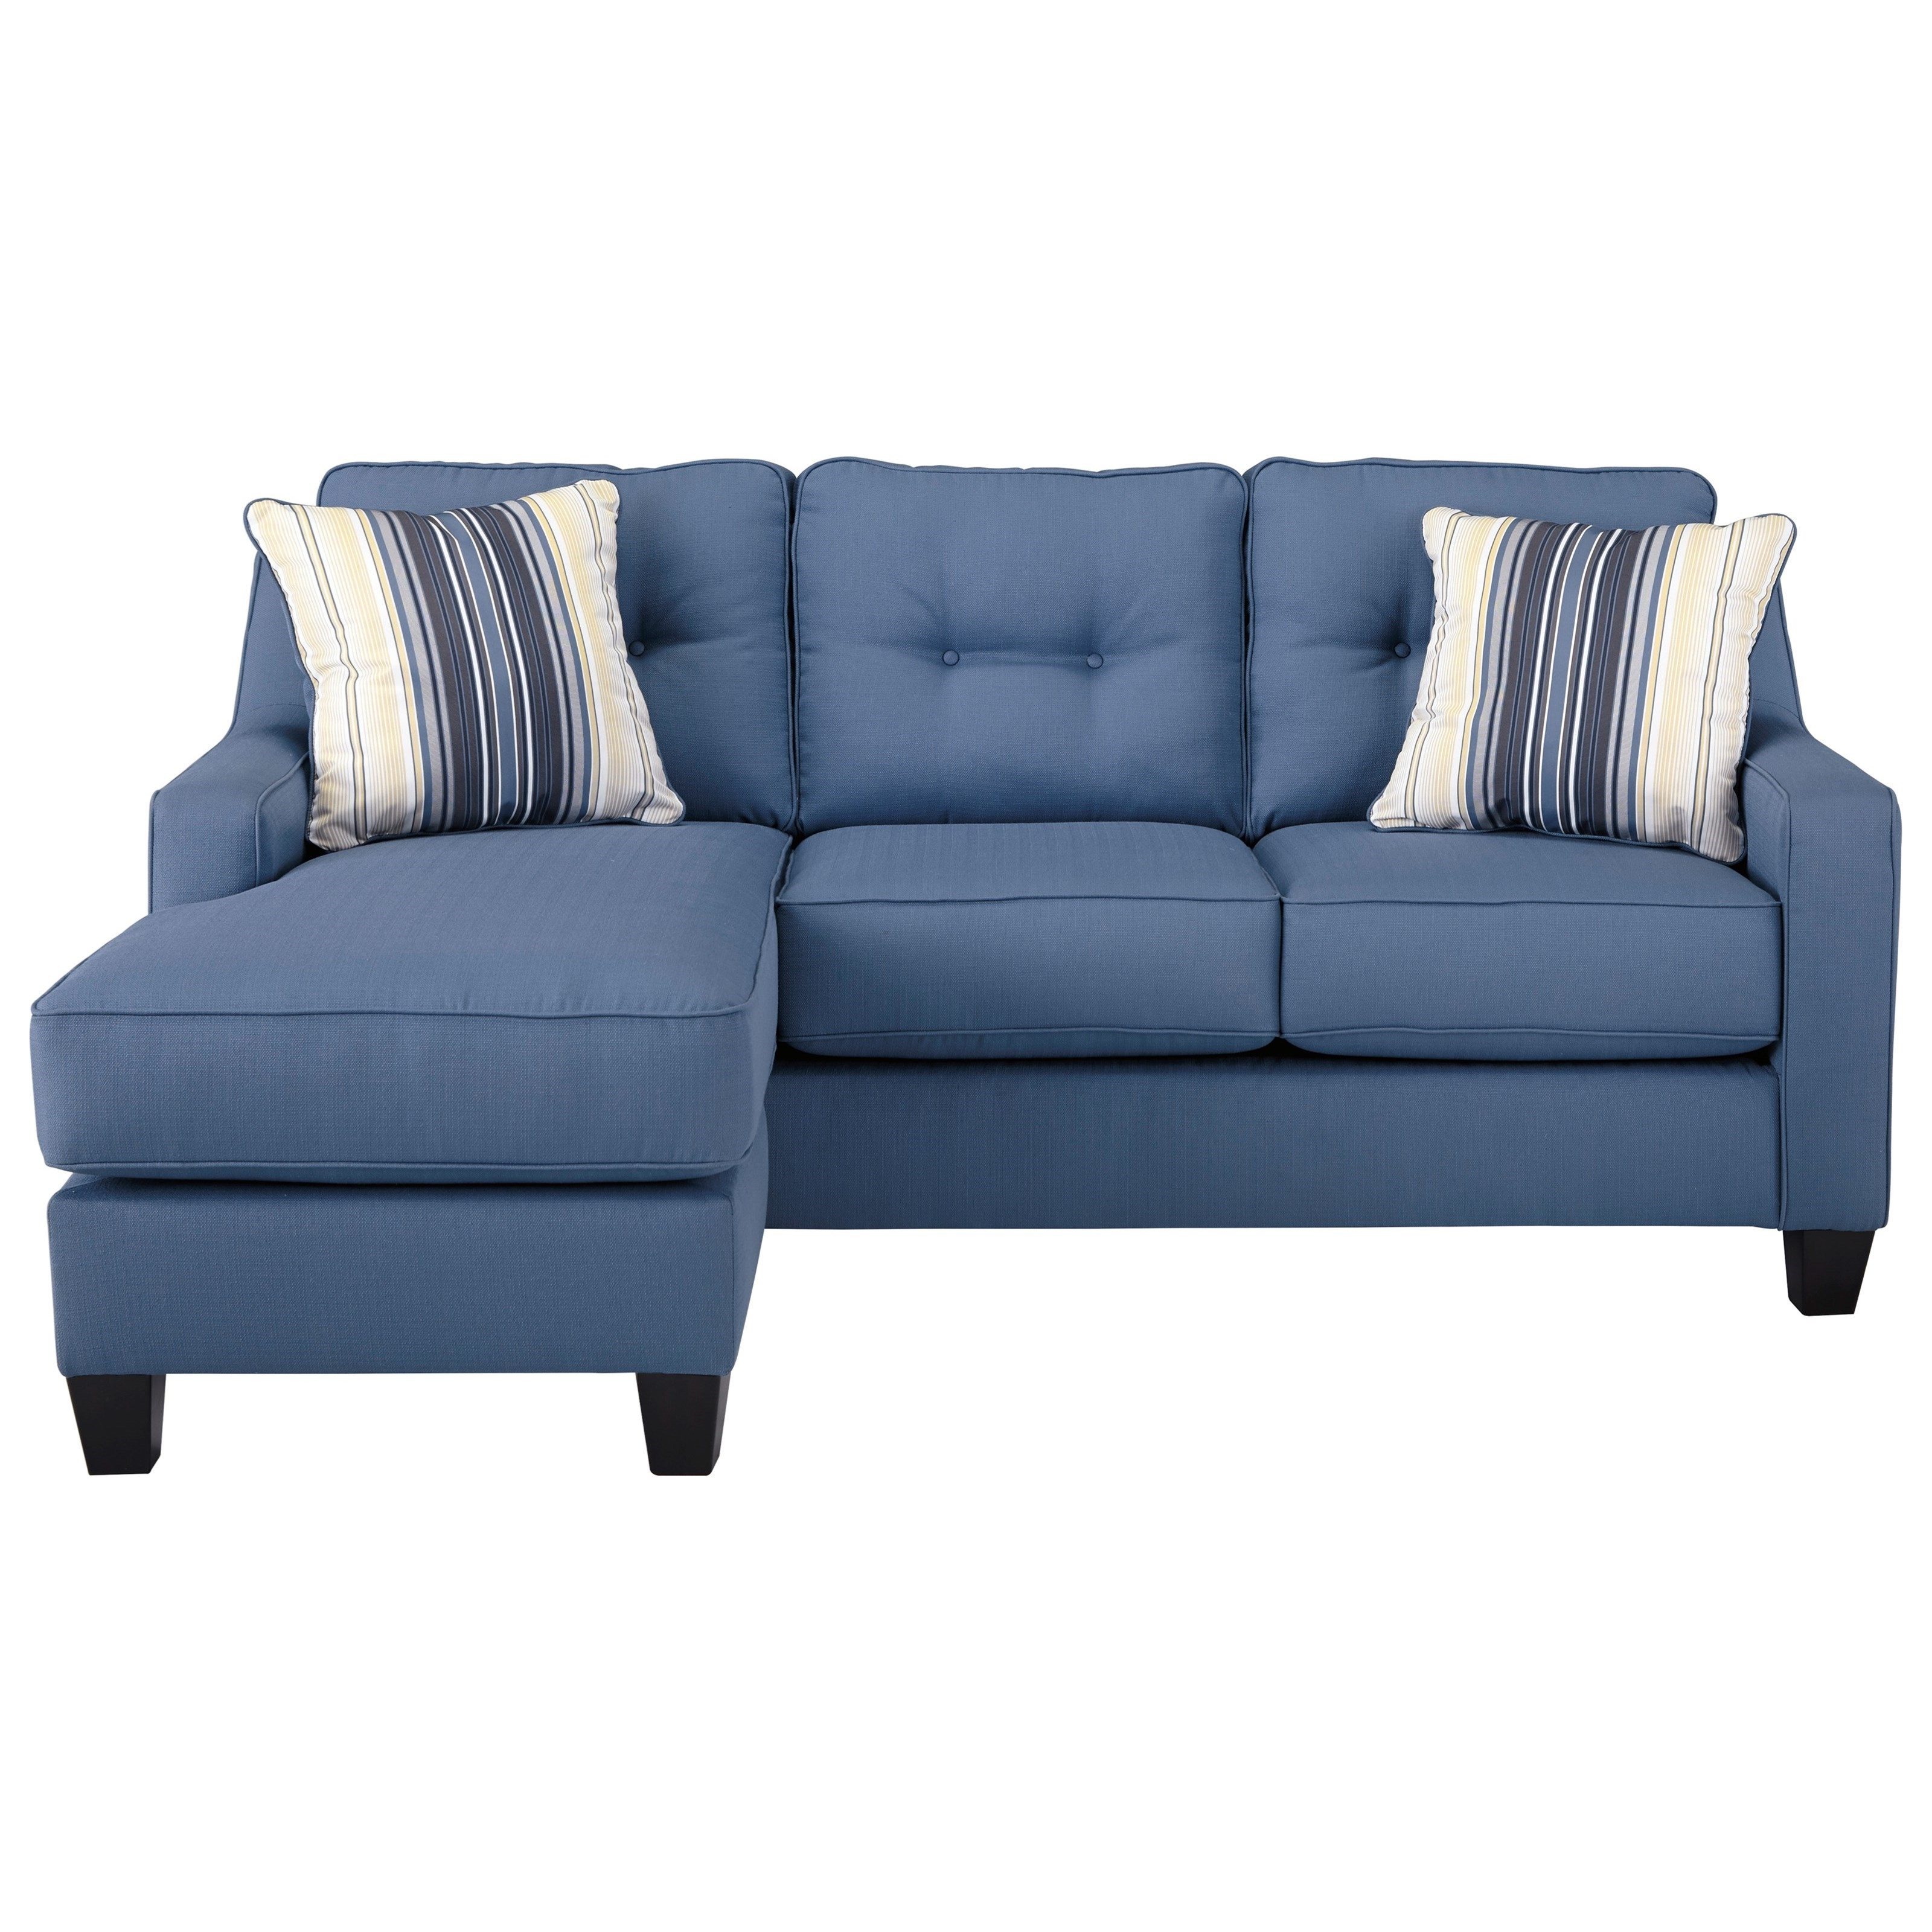 2017 Benchcraft Aldie Nuvella Queen Sofa Chaise Sleeper In Performance For Sleeper Sofa Chaises (View 4 of 15)